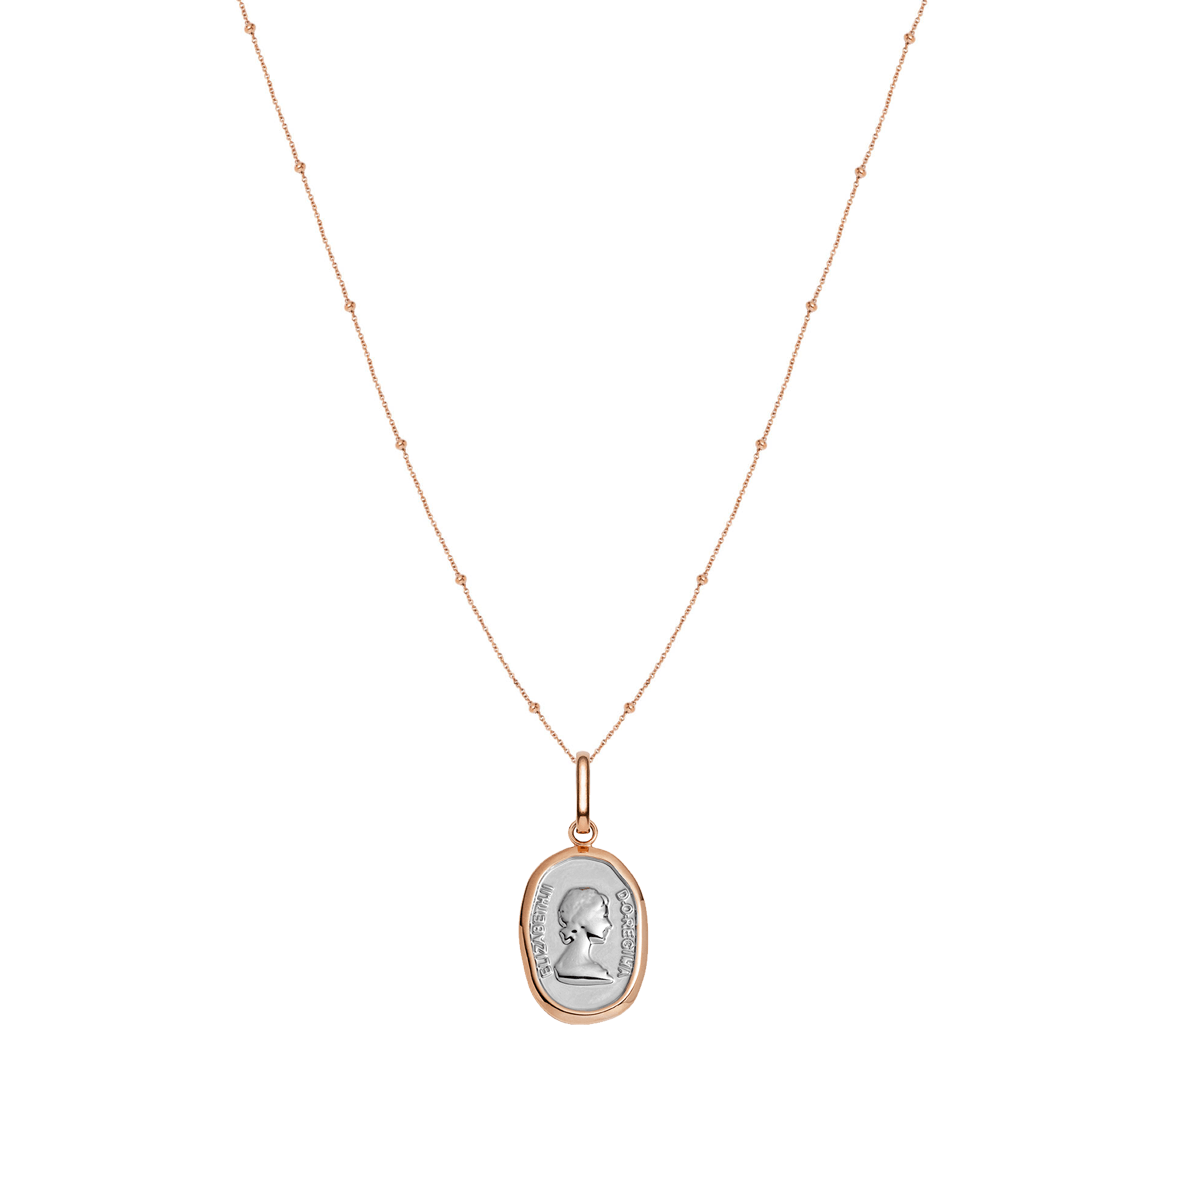 Queen Sphere Chain Necklace 16 in (Rose Gold)